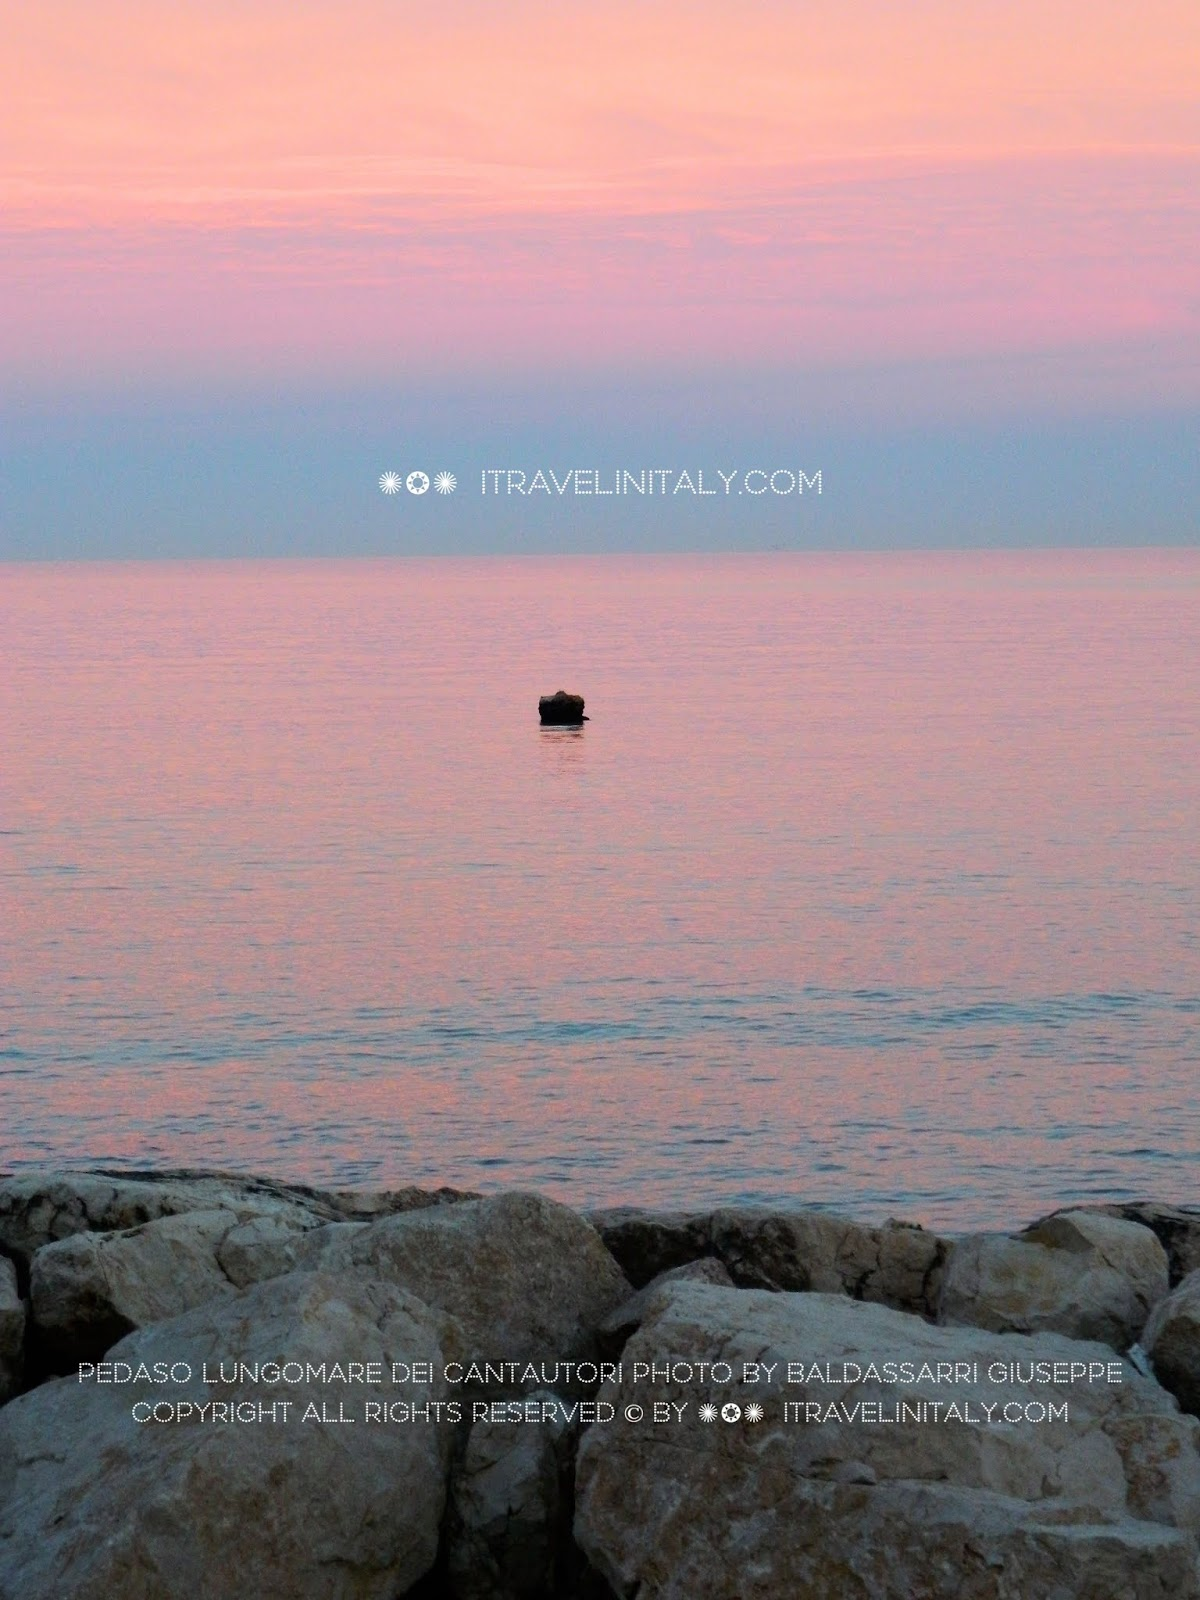 Sign In Photo By Baldassarri Giuseppe Copyright All rights reserved © By ✺❂✺  itravelinitaly.com Travel is the traveler in Italy Discover the soul of the places